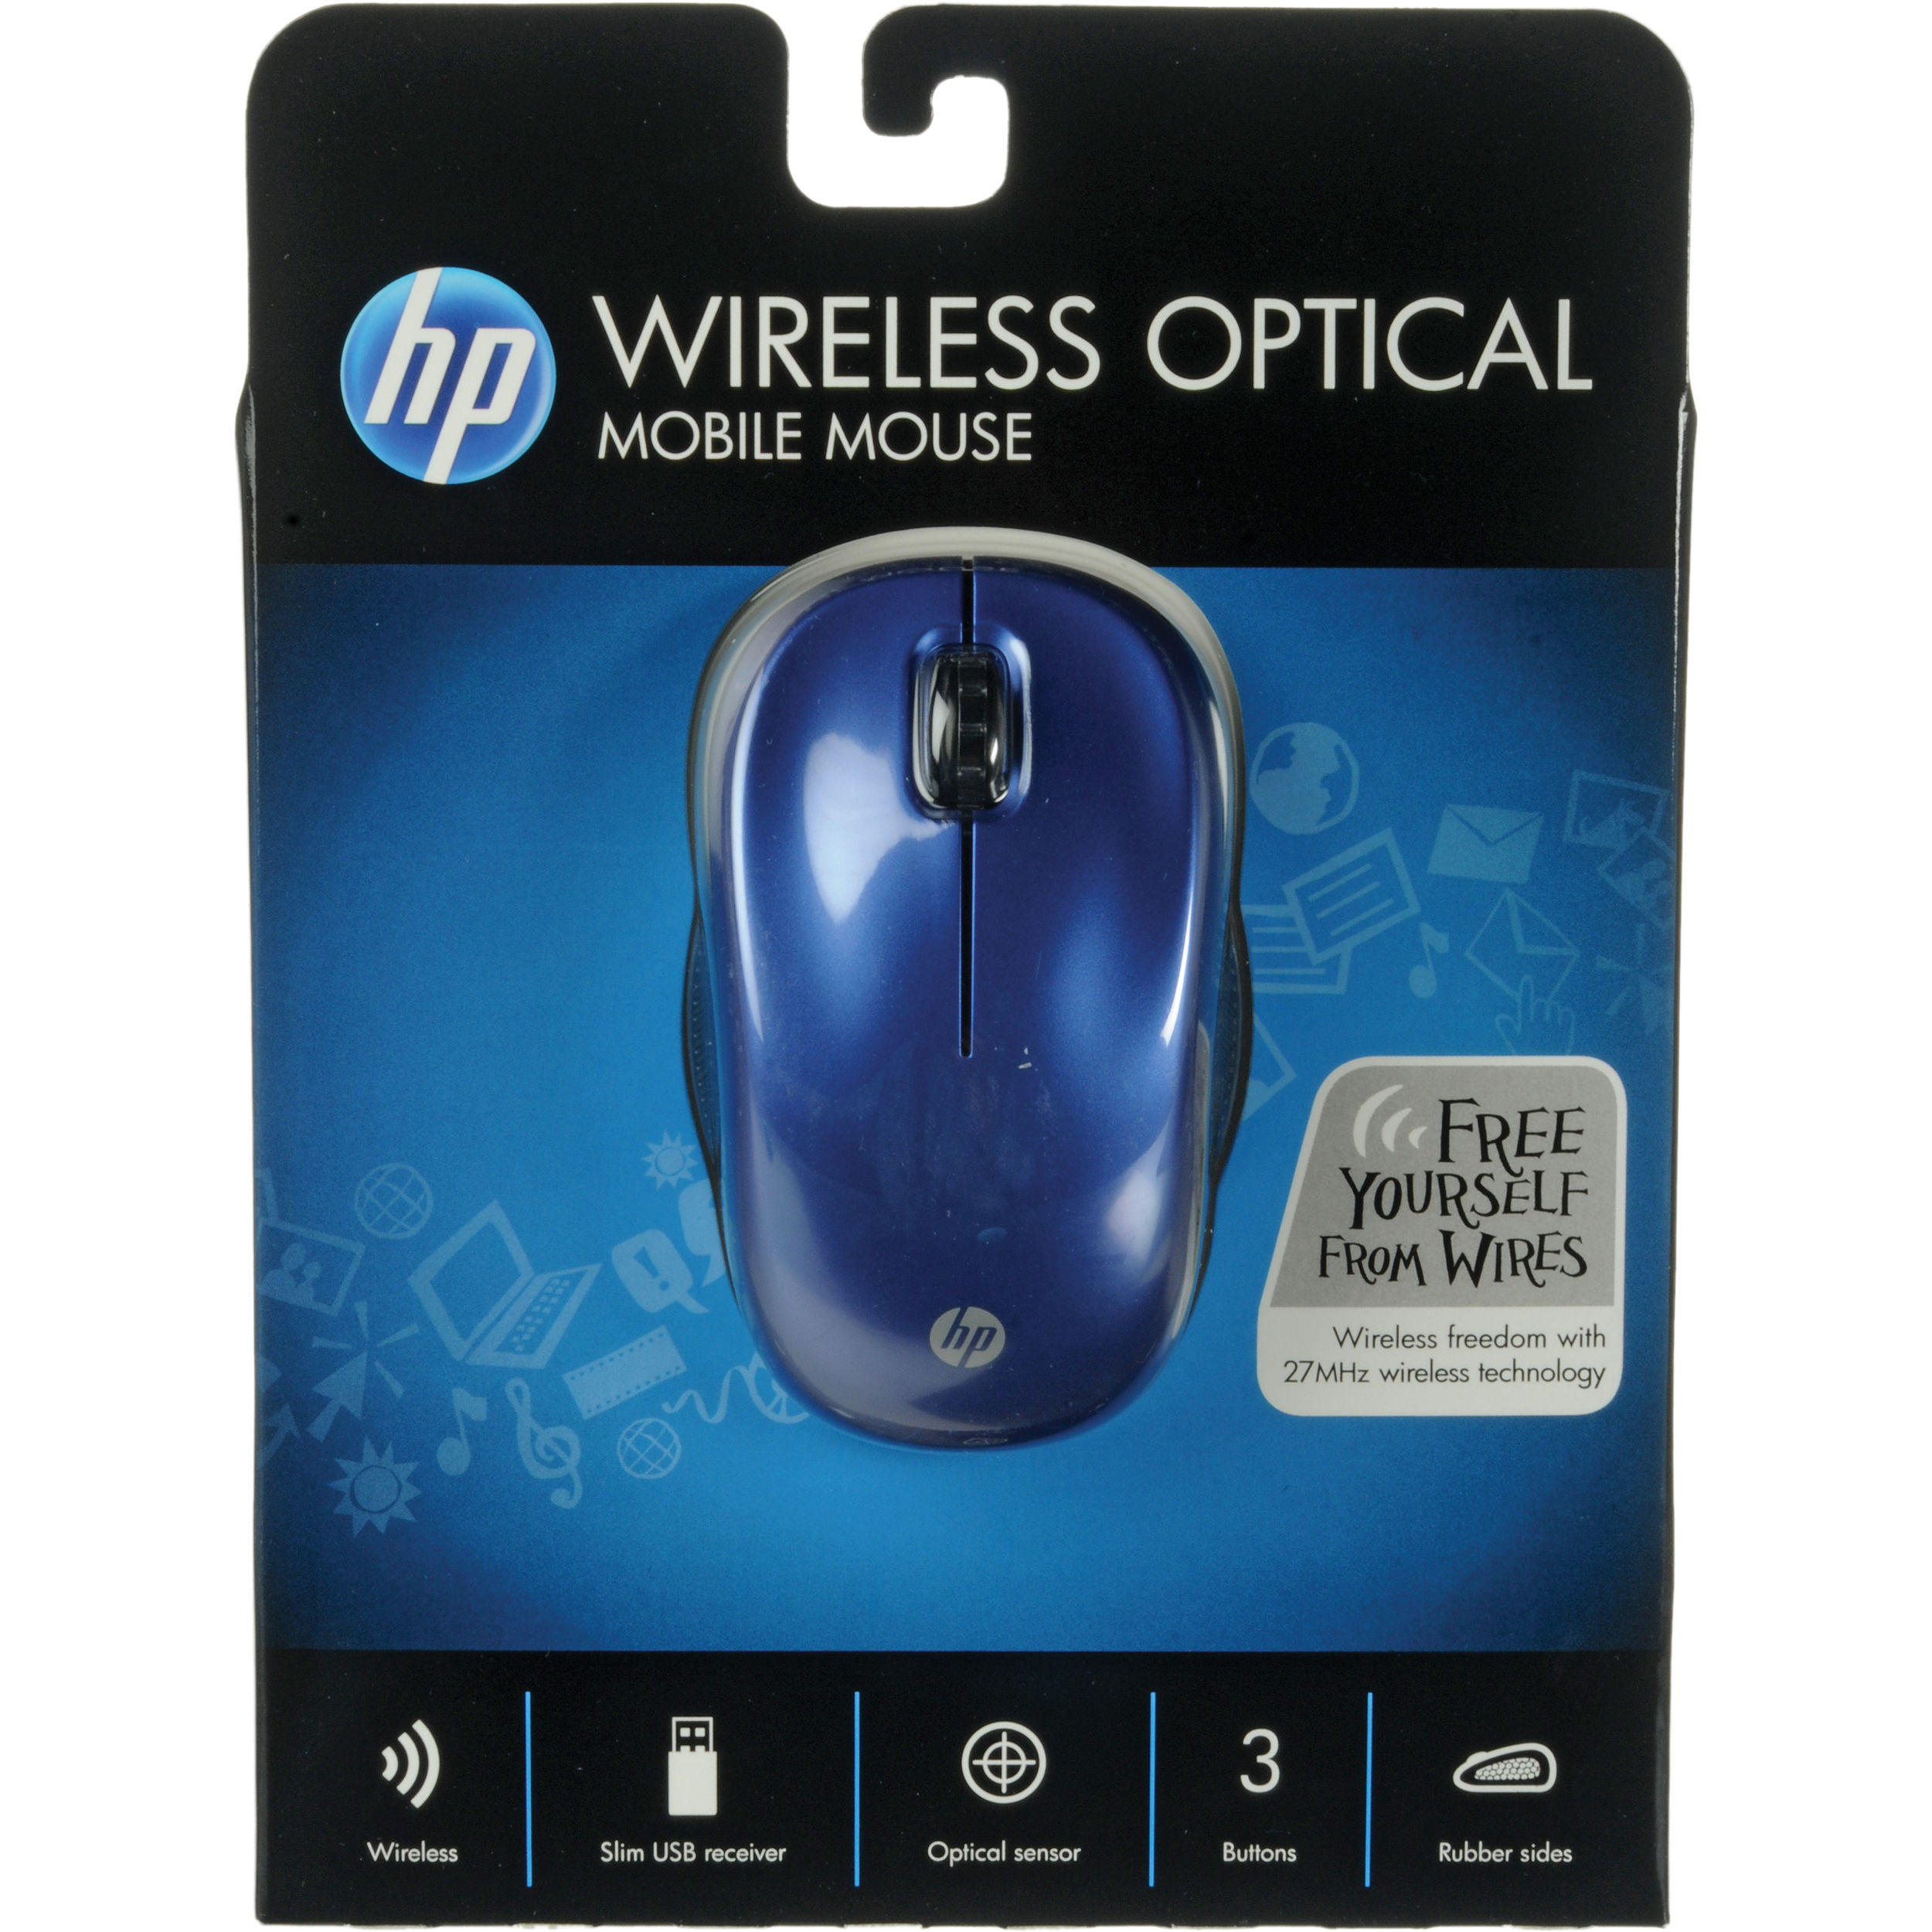 DOWNLOAD DRIVER: 27MHZ WIRELESS OPTICAL MOUSE